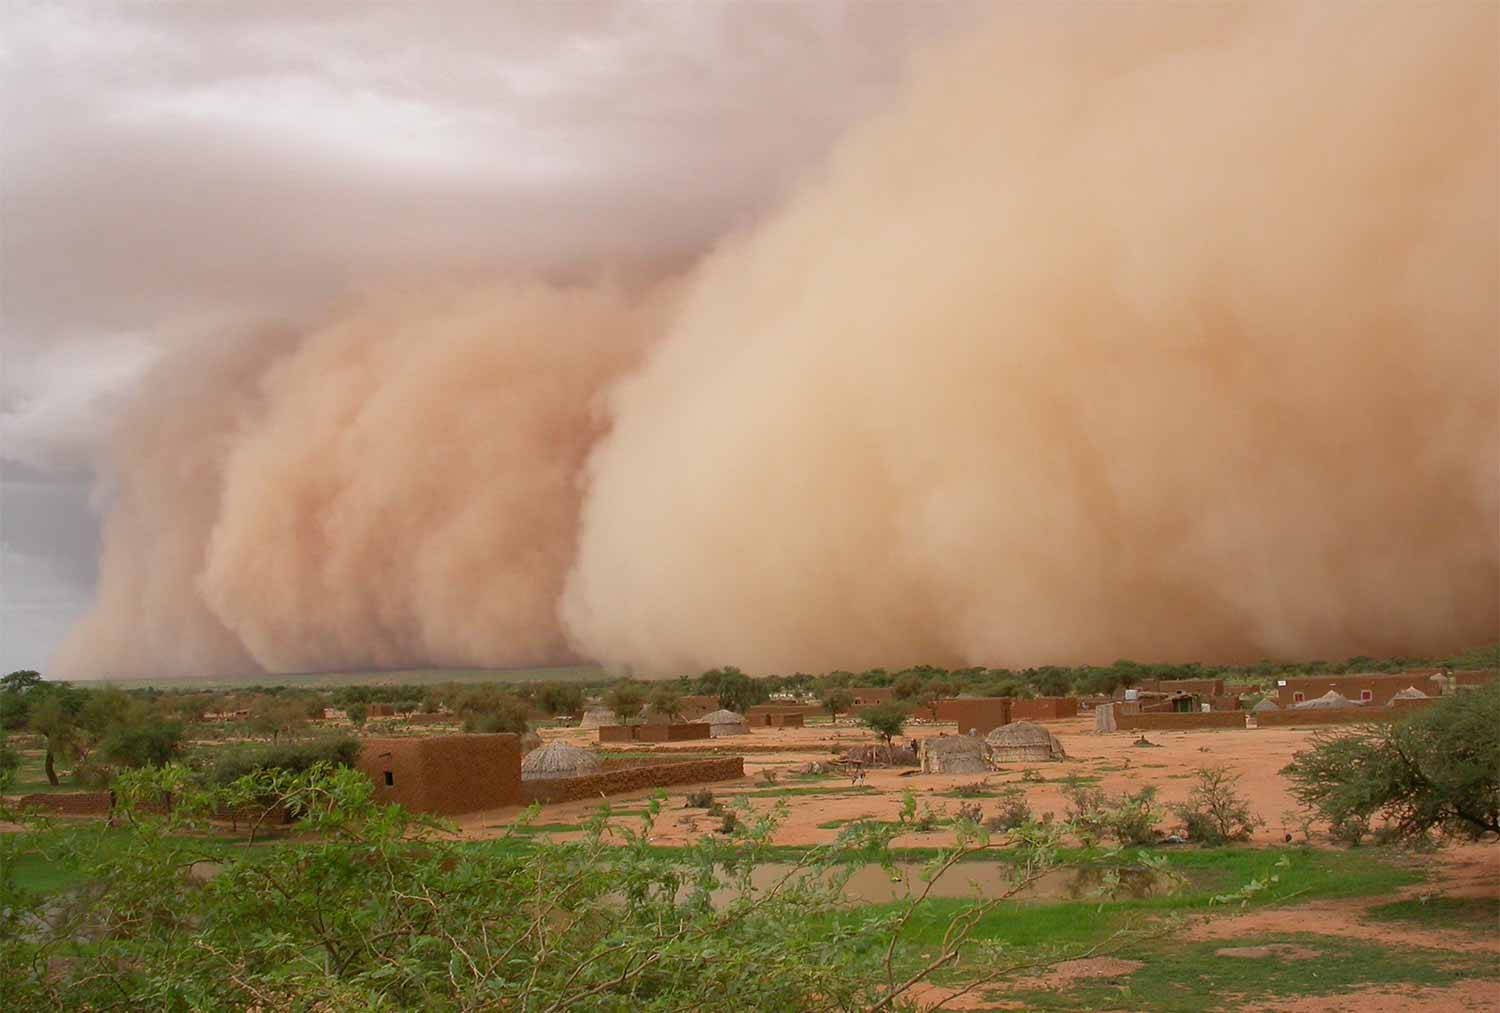 Image: Arrival of a wall of dust known as a haboob